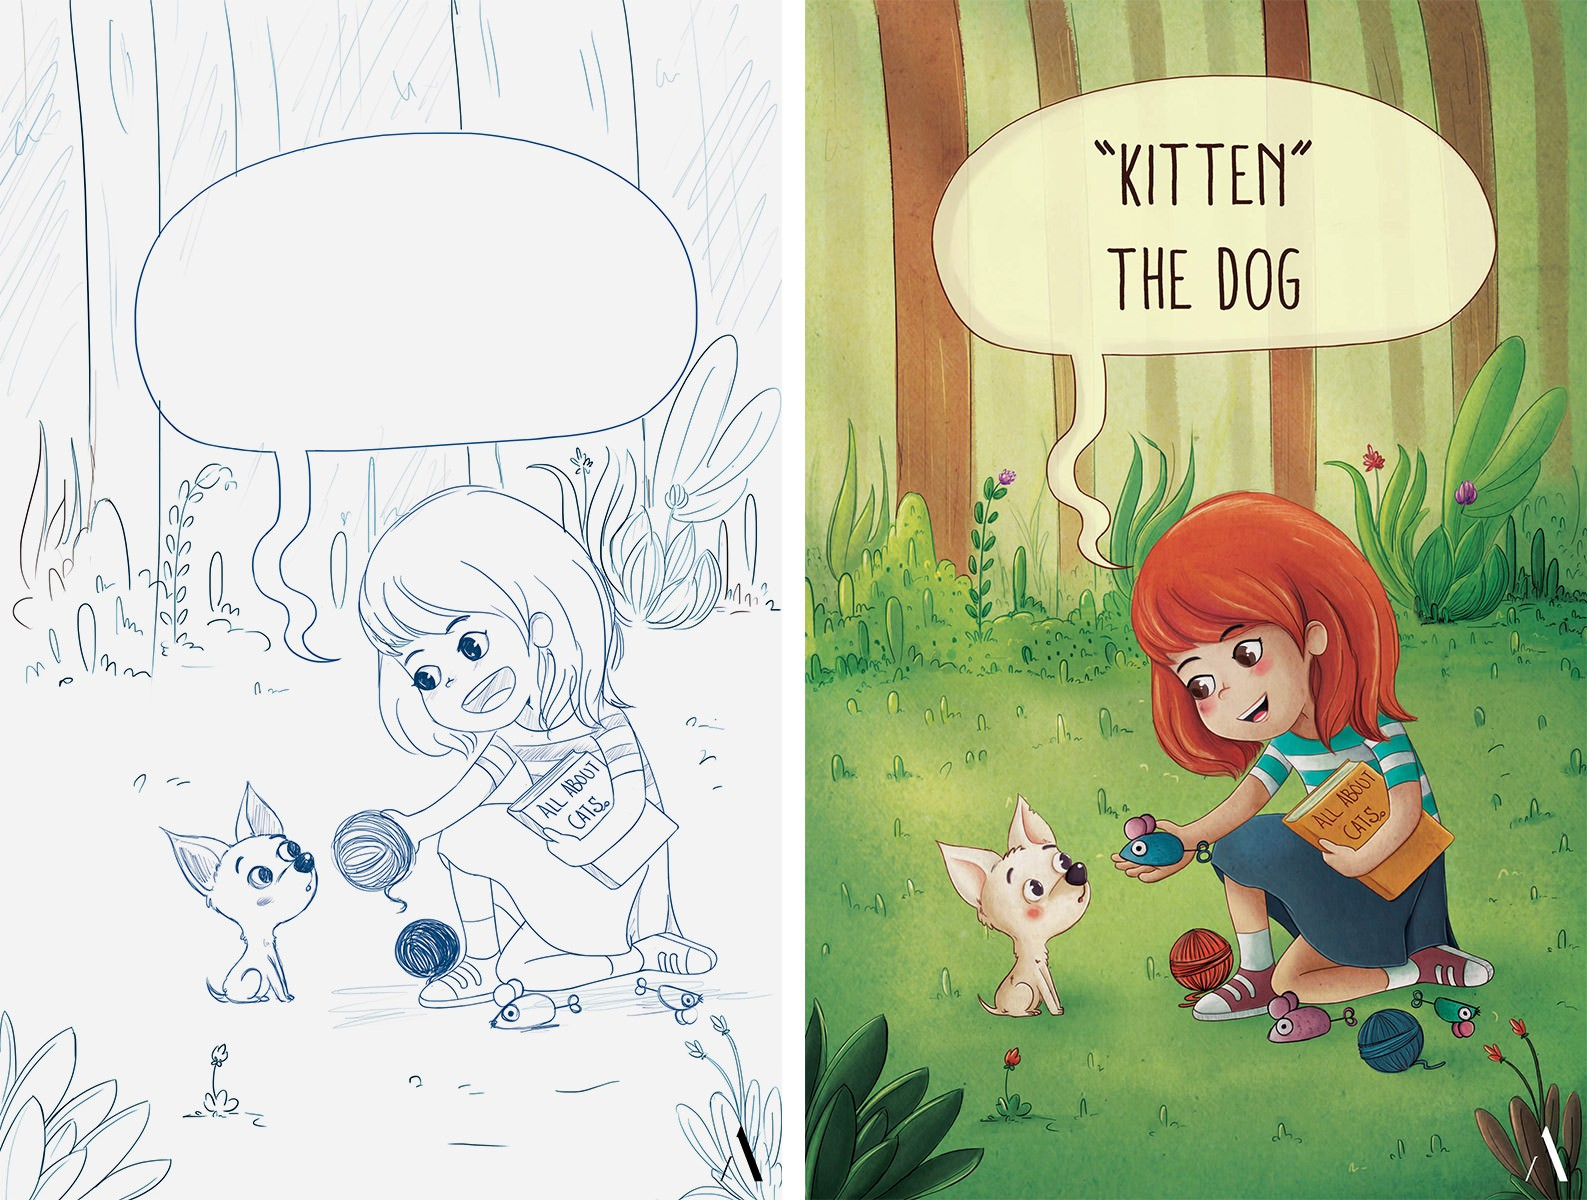 Final illustration for the cover of the children's book 'Kitten the Dog'